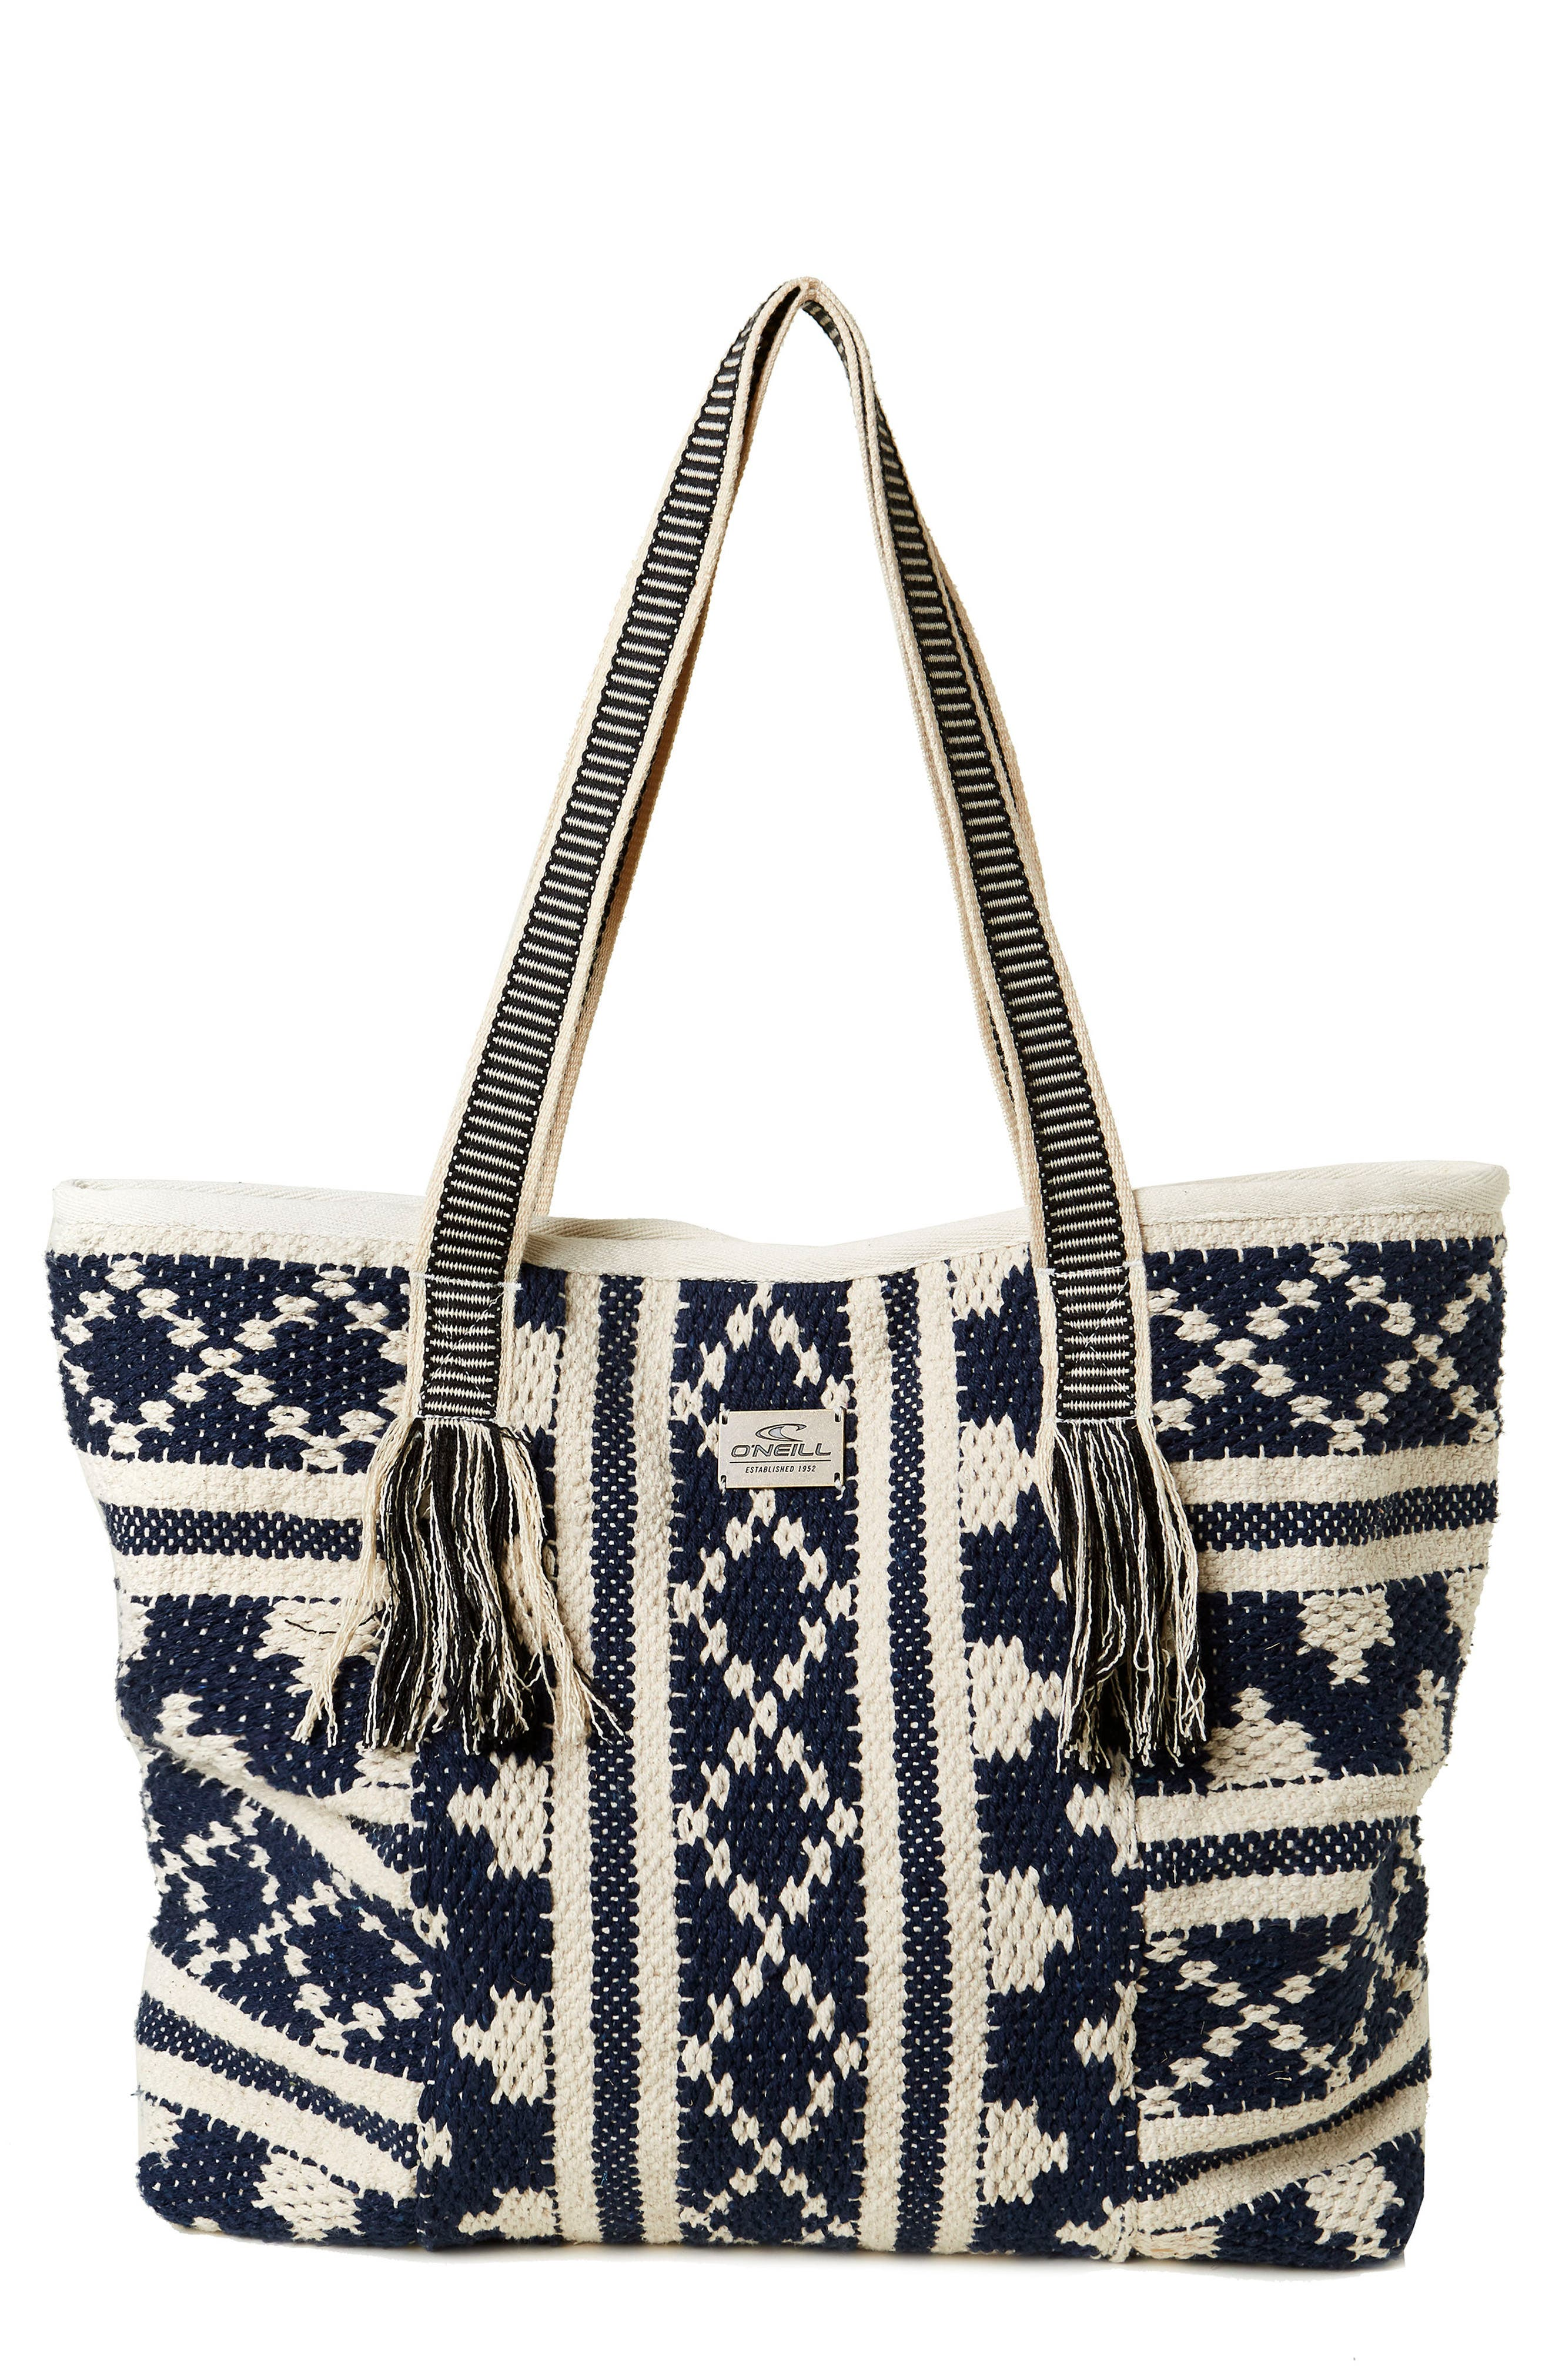 O'Neill Sojourn Tote